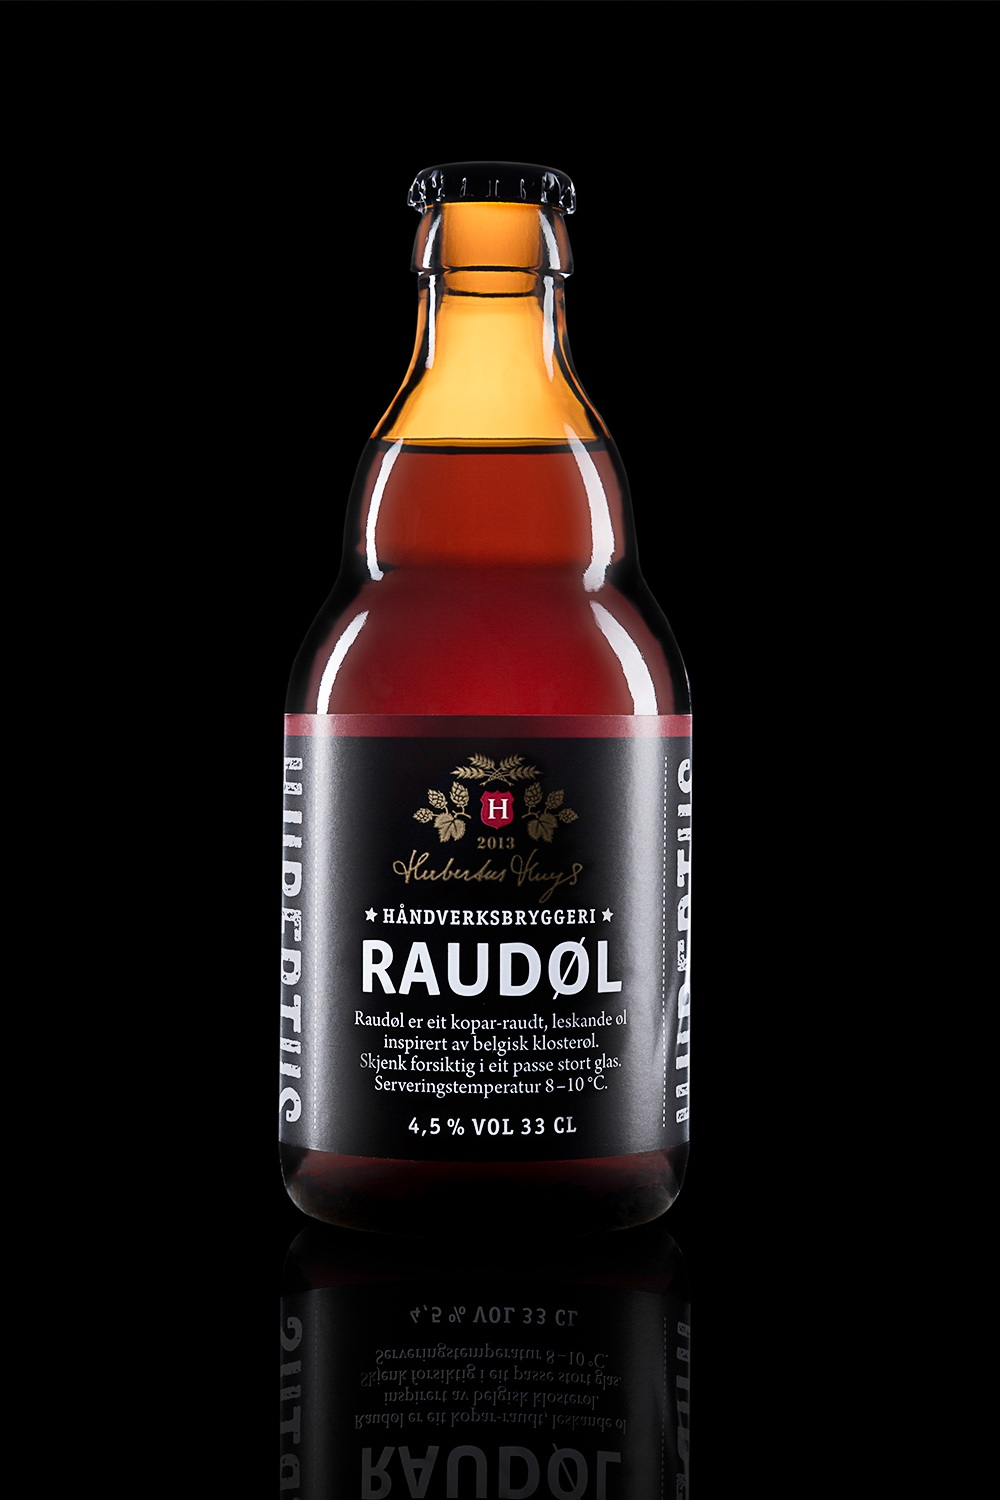 Raudøl - Type: Inspired by Belgian Trappist beer.Color: Red brown.Aroma: Fruity, rich, complex. Raisins, banana.Flavor: Fruity. Raisins, plums, caramel, biscuit, bread.Contents: Alcohol 4,5%.Food pairing: Dark stews, beef and lamb.